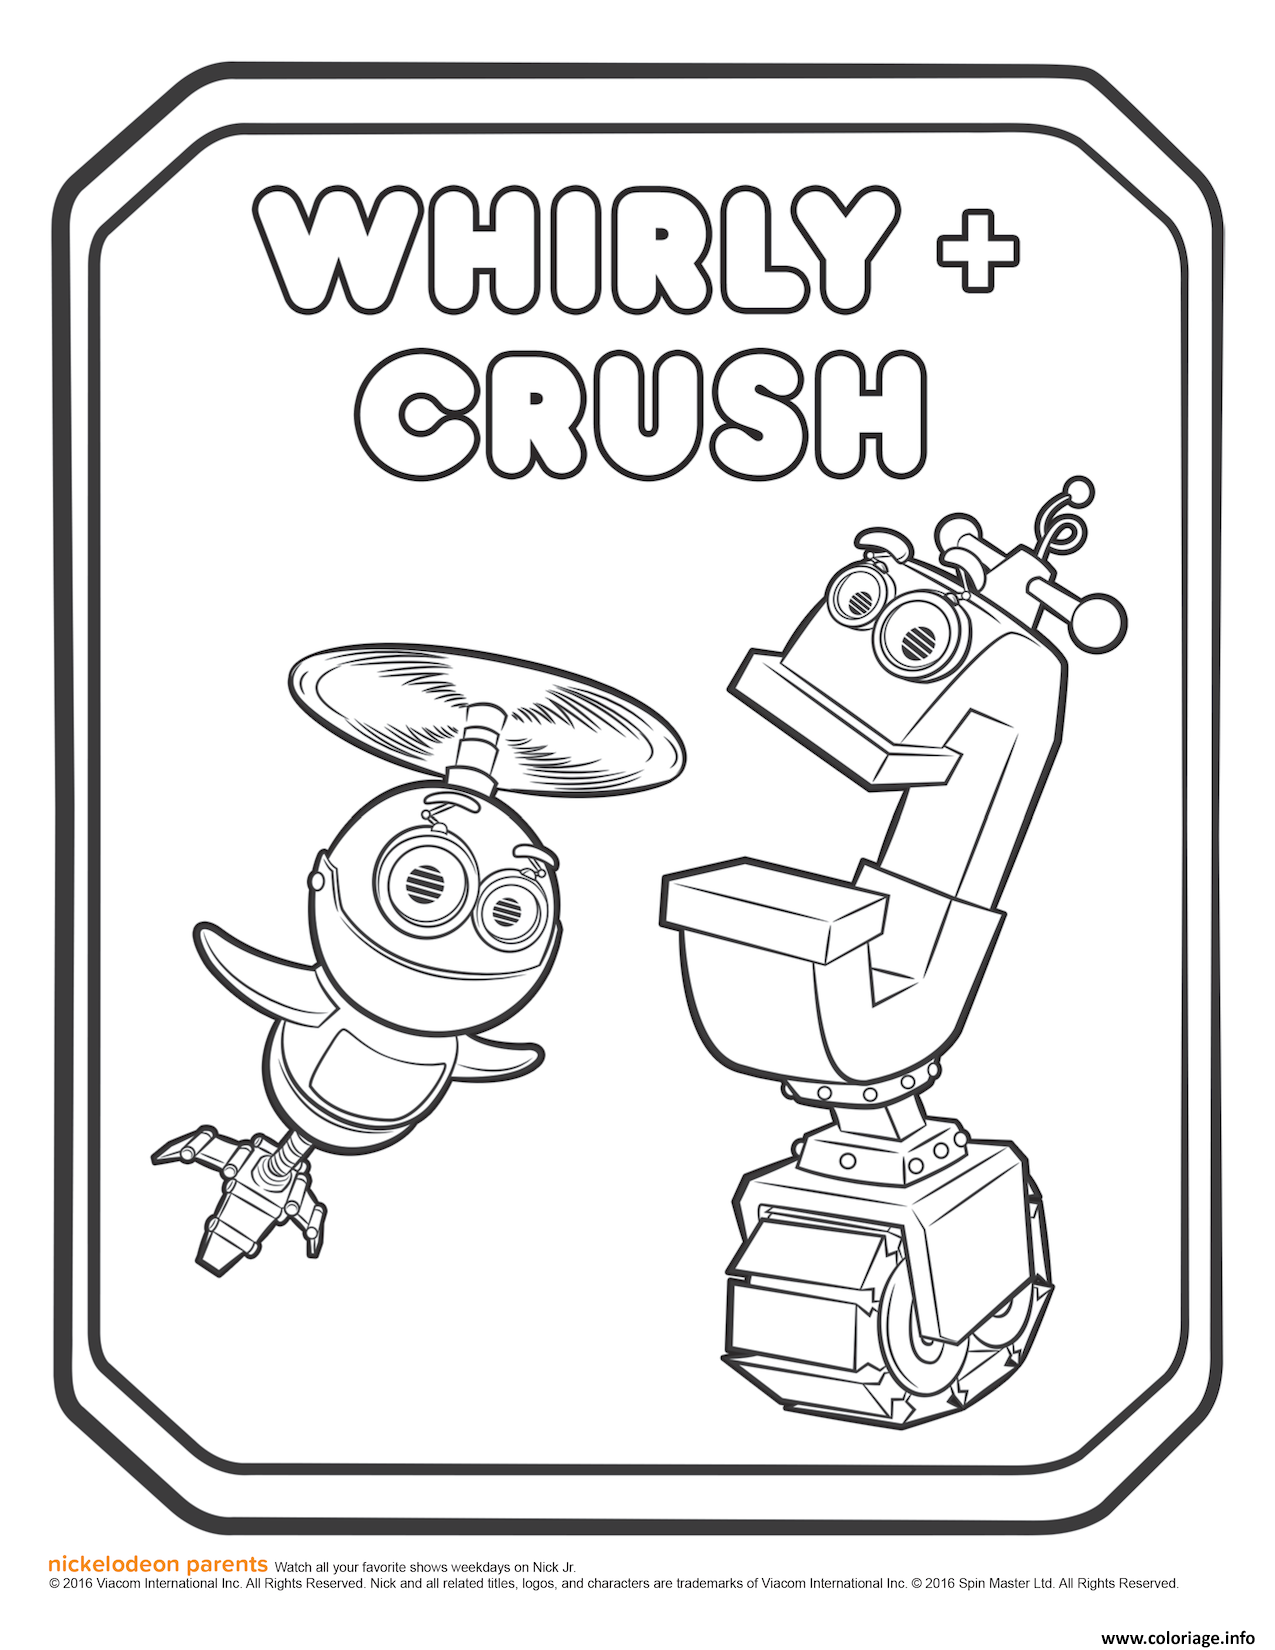 Dessin Rusty Rivets Whirly and Crush Coloring Page Coloriage Gratuit à Imprimer